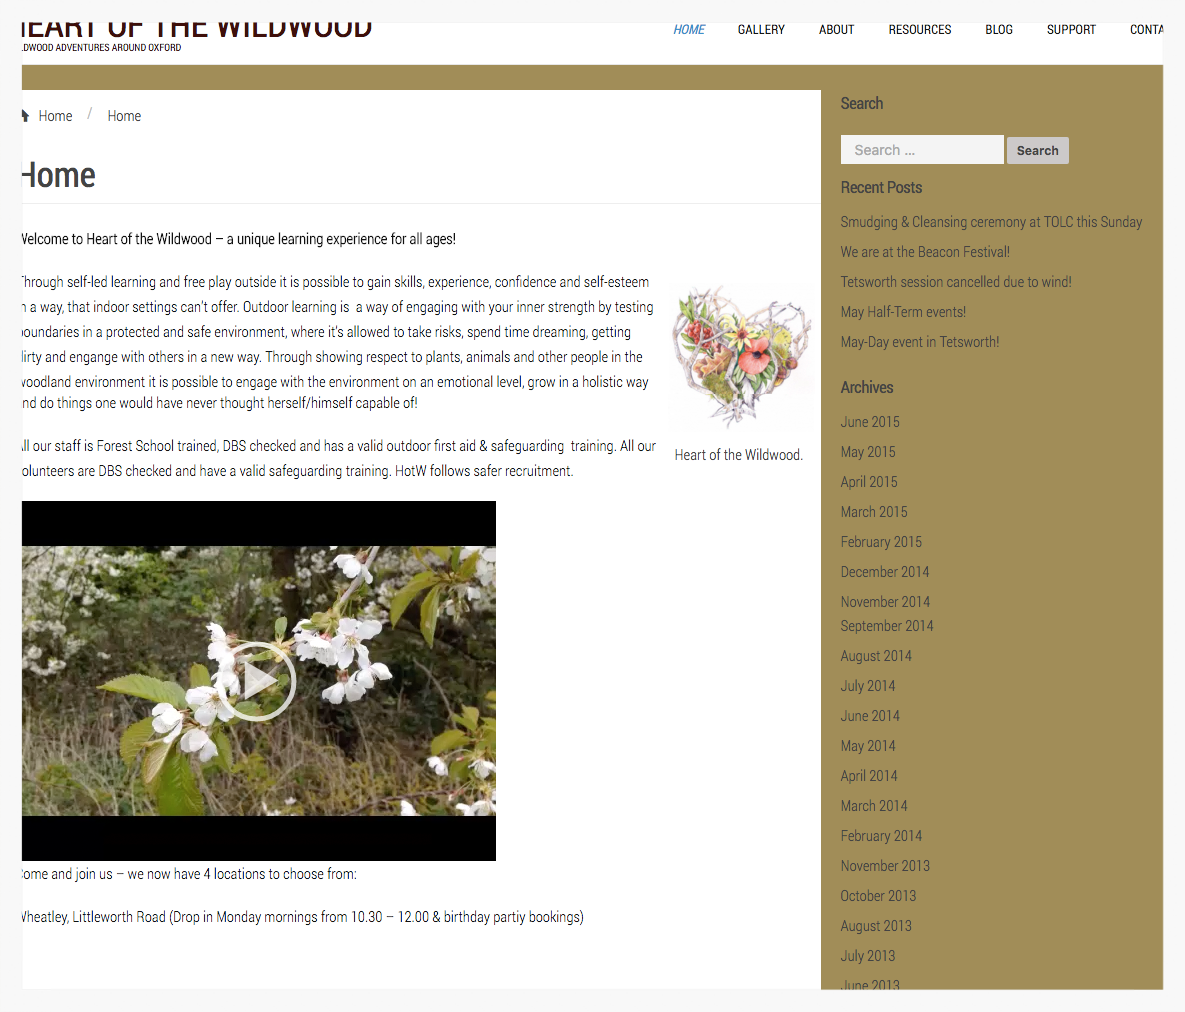 Heart of the Wildwood's old website lacked images of the people it serves — children.